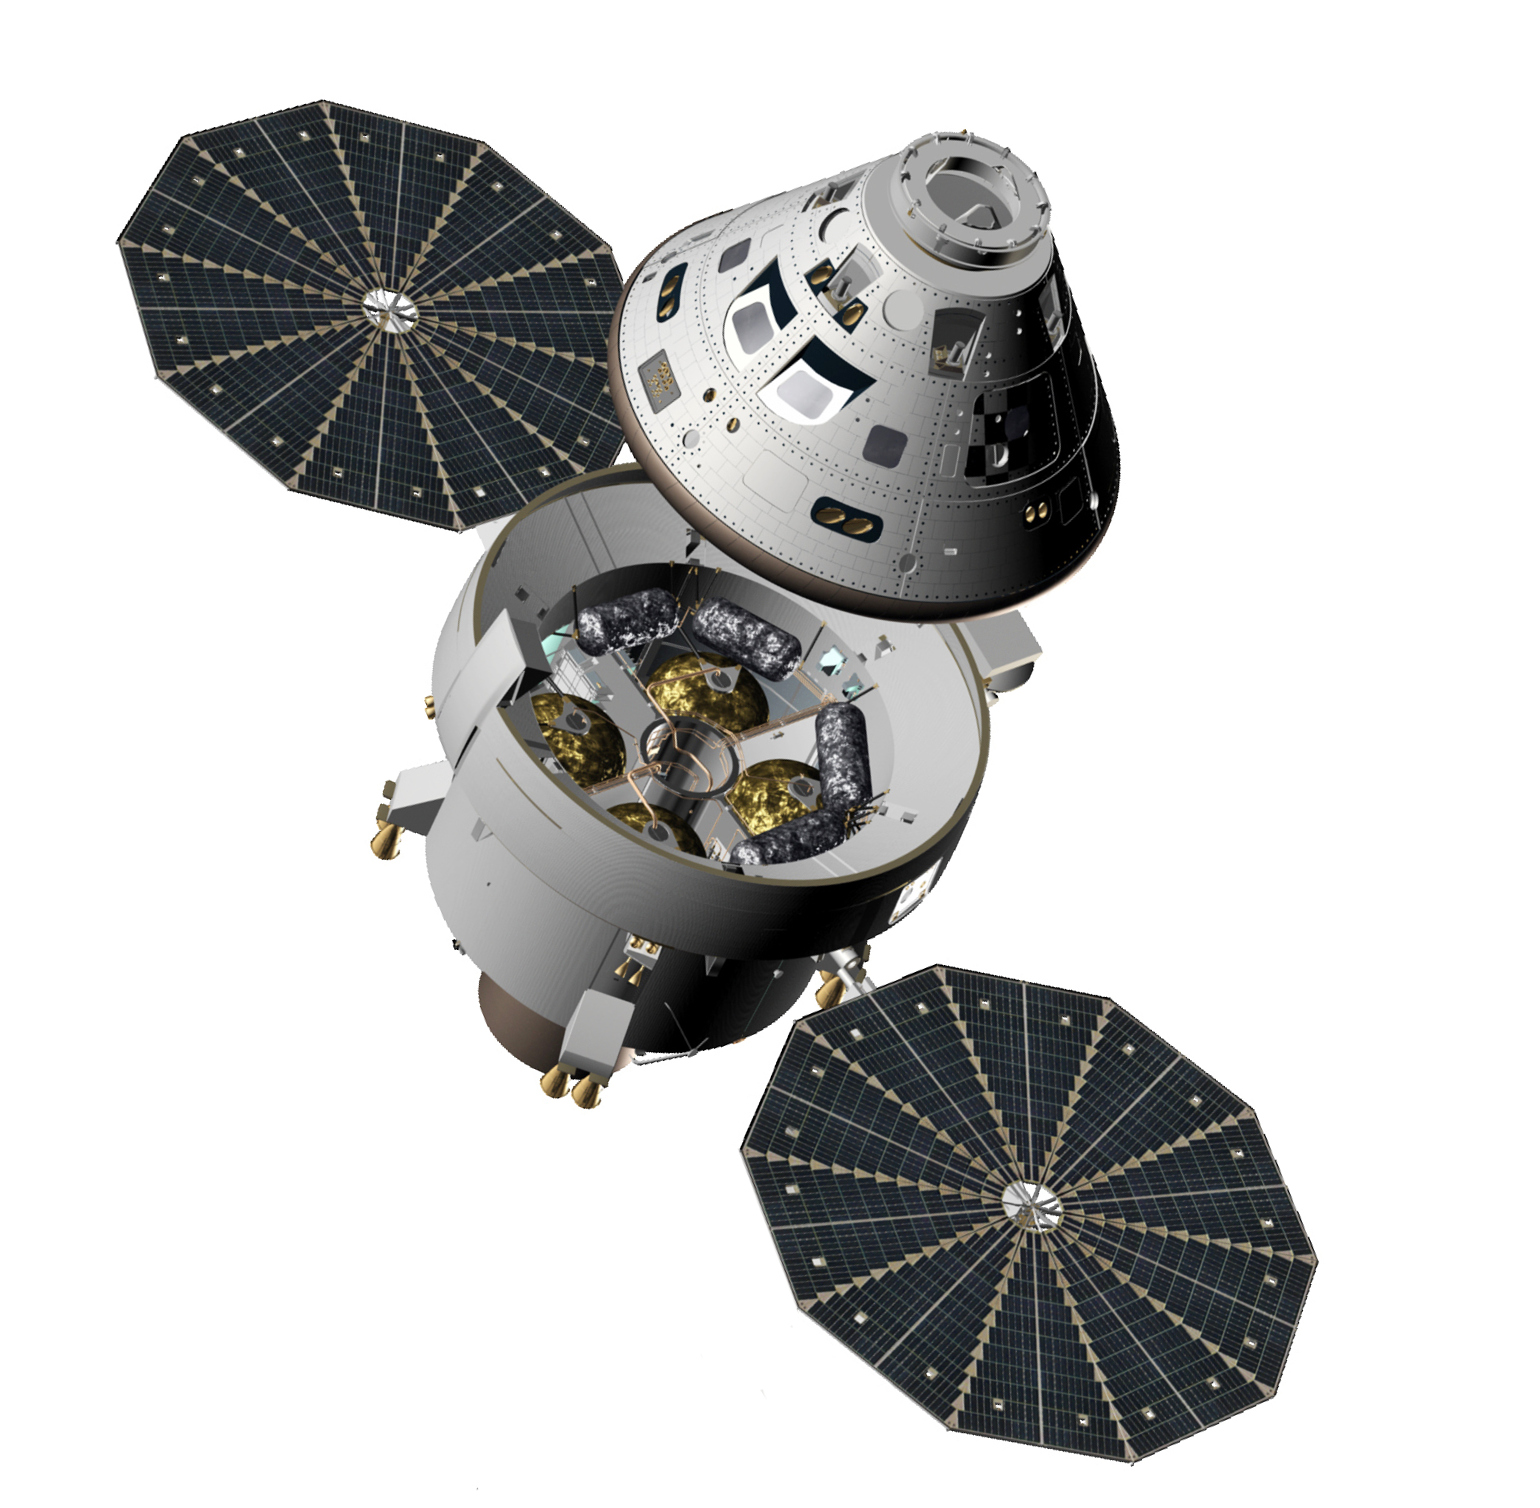 Orion Spacecraft Dimensions - Pics about space